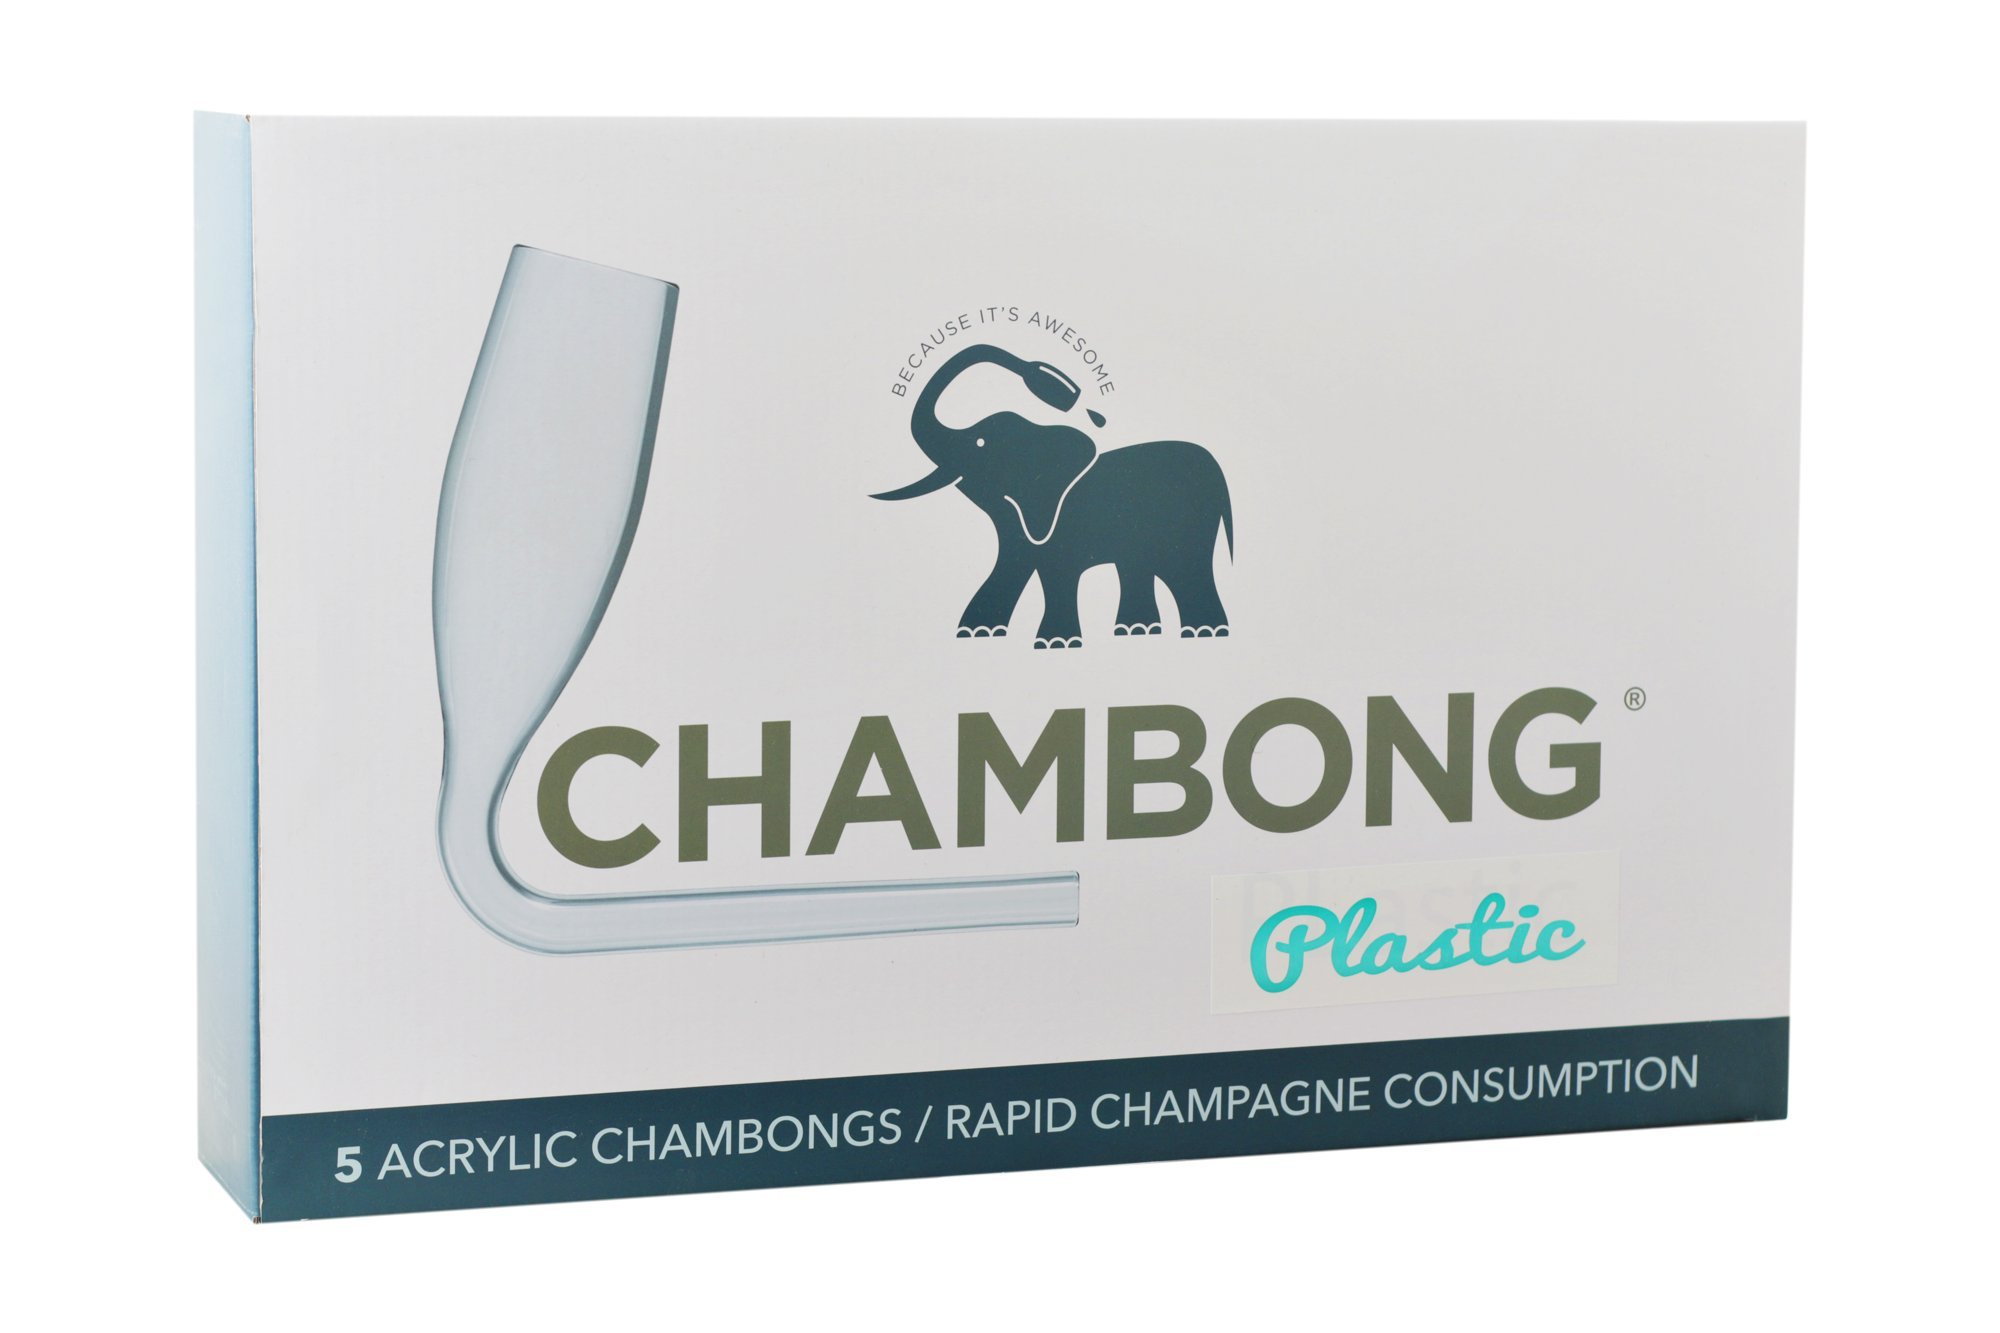 Chambong - Plastic Champagne Shooters, Champagne Bong, Champagne Accessories, Prosecco Glasses, Bachelorette Party Favors, Bridesmaids Gifts, Prosecco Gifts, 6 oz. (5 Pack) by Chambong